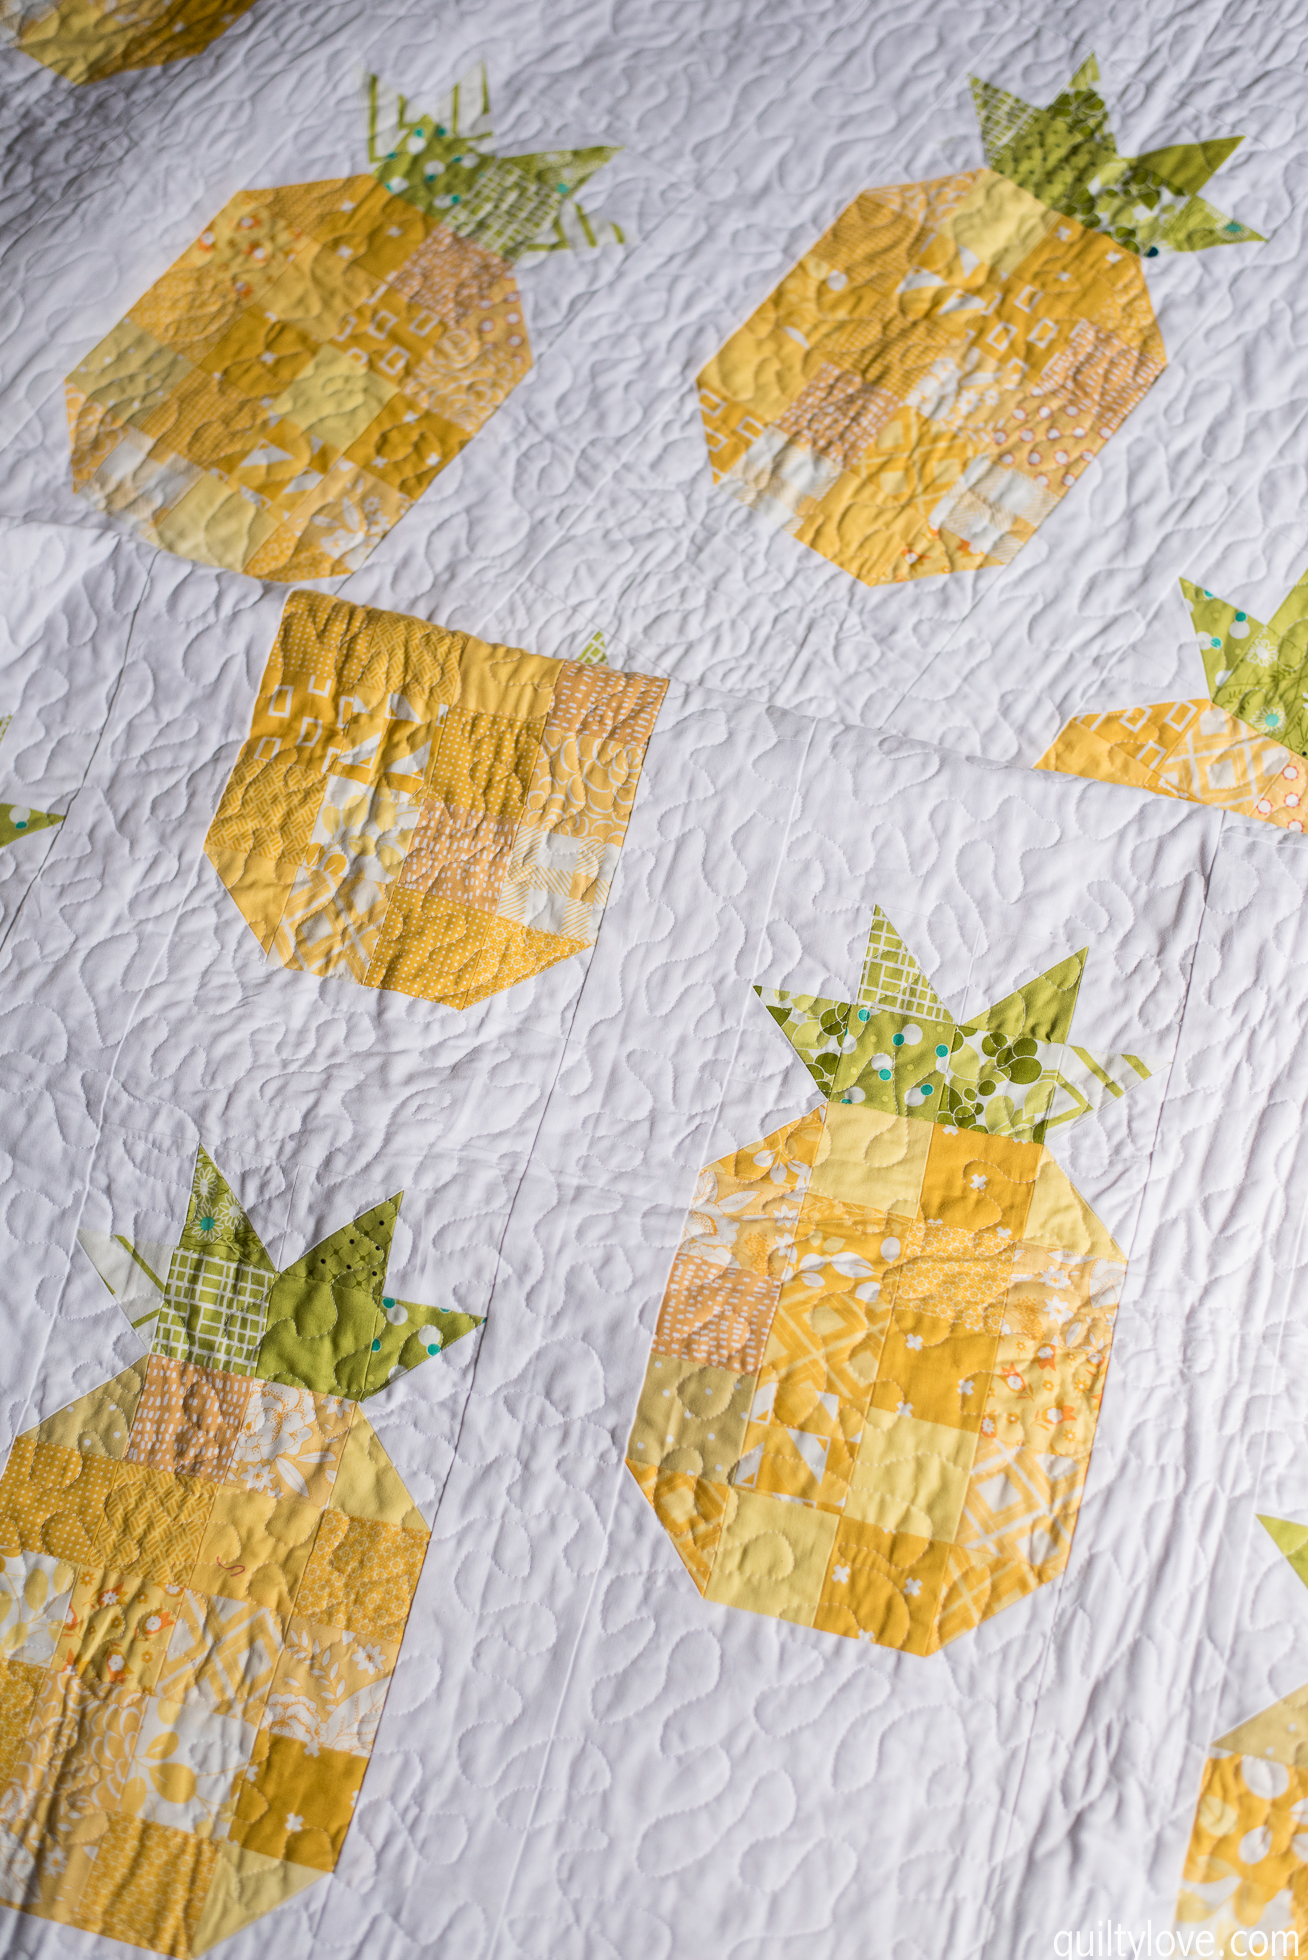 The Pineapple Quilt Quilty Love